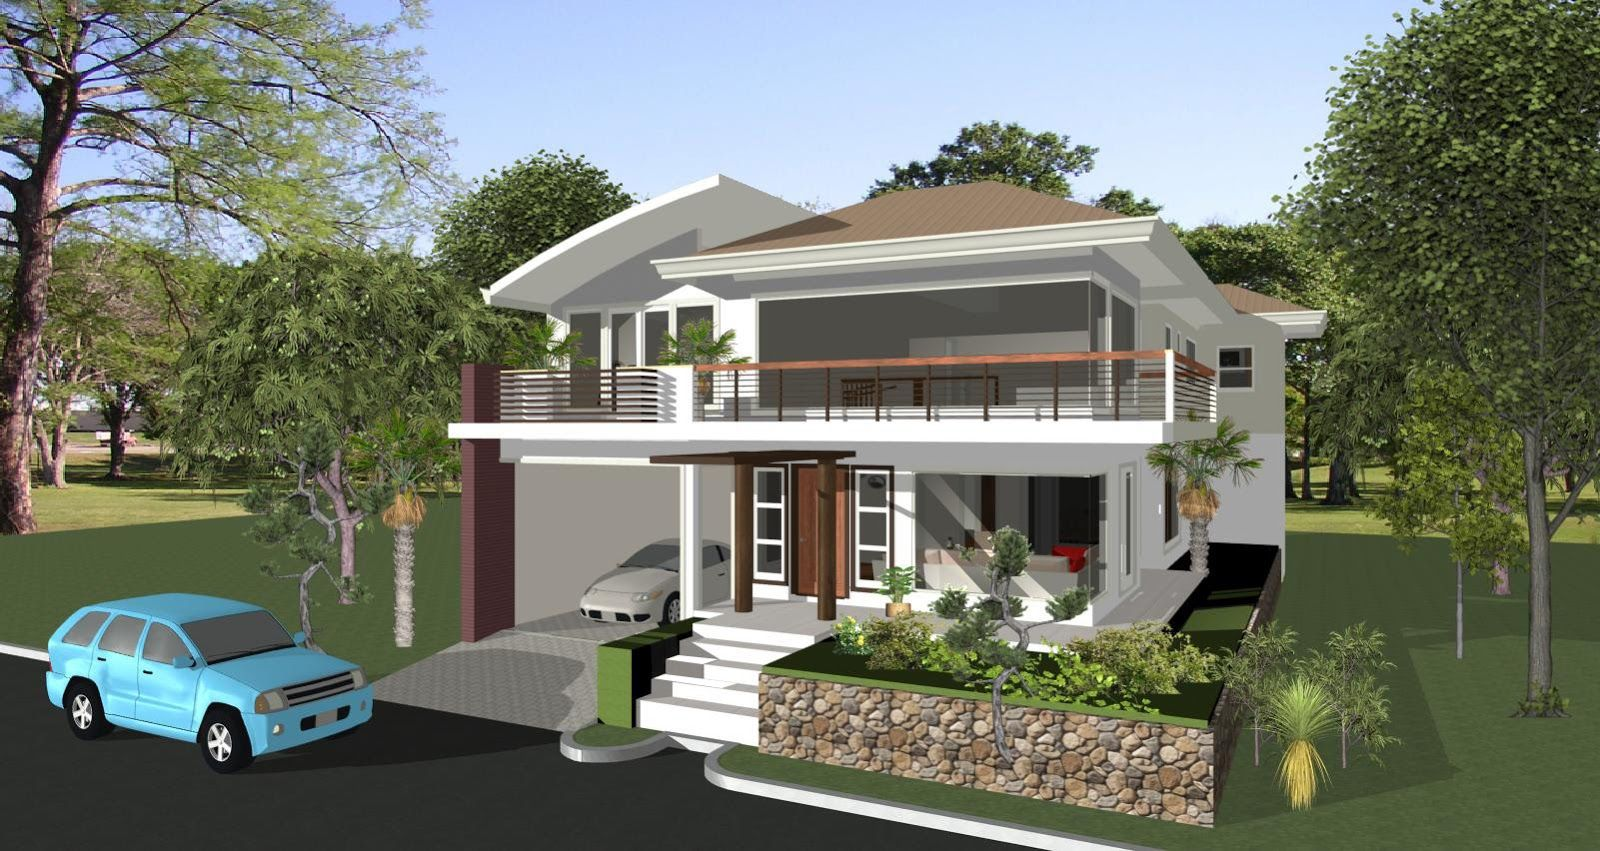 house designs iloilo philippine home designs philippines house ... on modern nipa hut in the philippines, farmhouse philippines, urban poor philippines, poor people in cebu philippines, houseboat philippines, best places to visit in manila philippines, asia philippines, mansion philippines, ati-atihan philippines, temple philippines, colonial philippines, rich-poor philippines, poor city philippines,